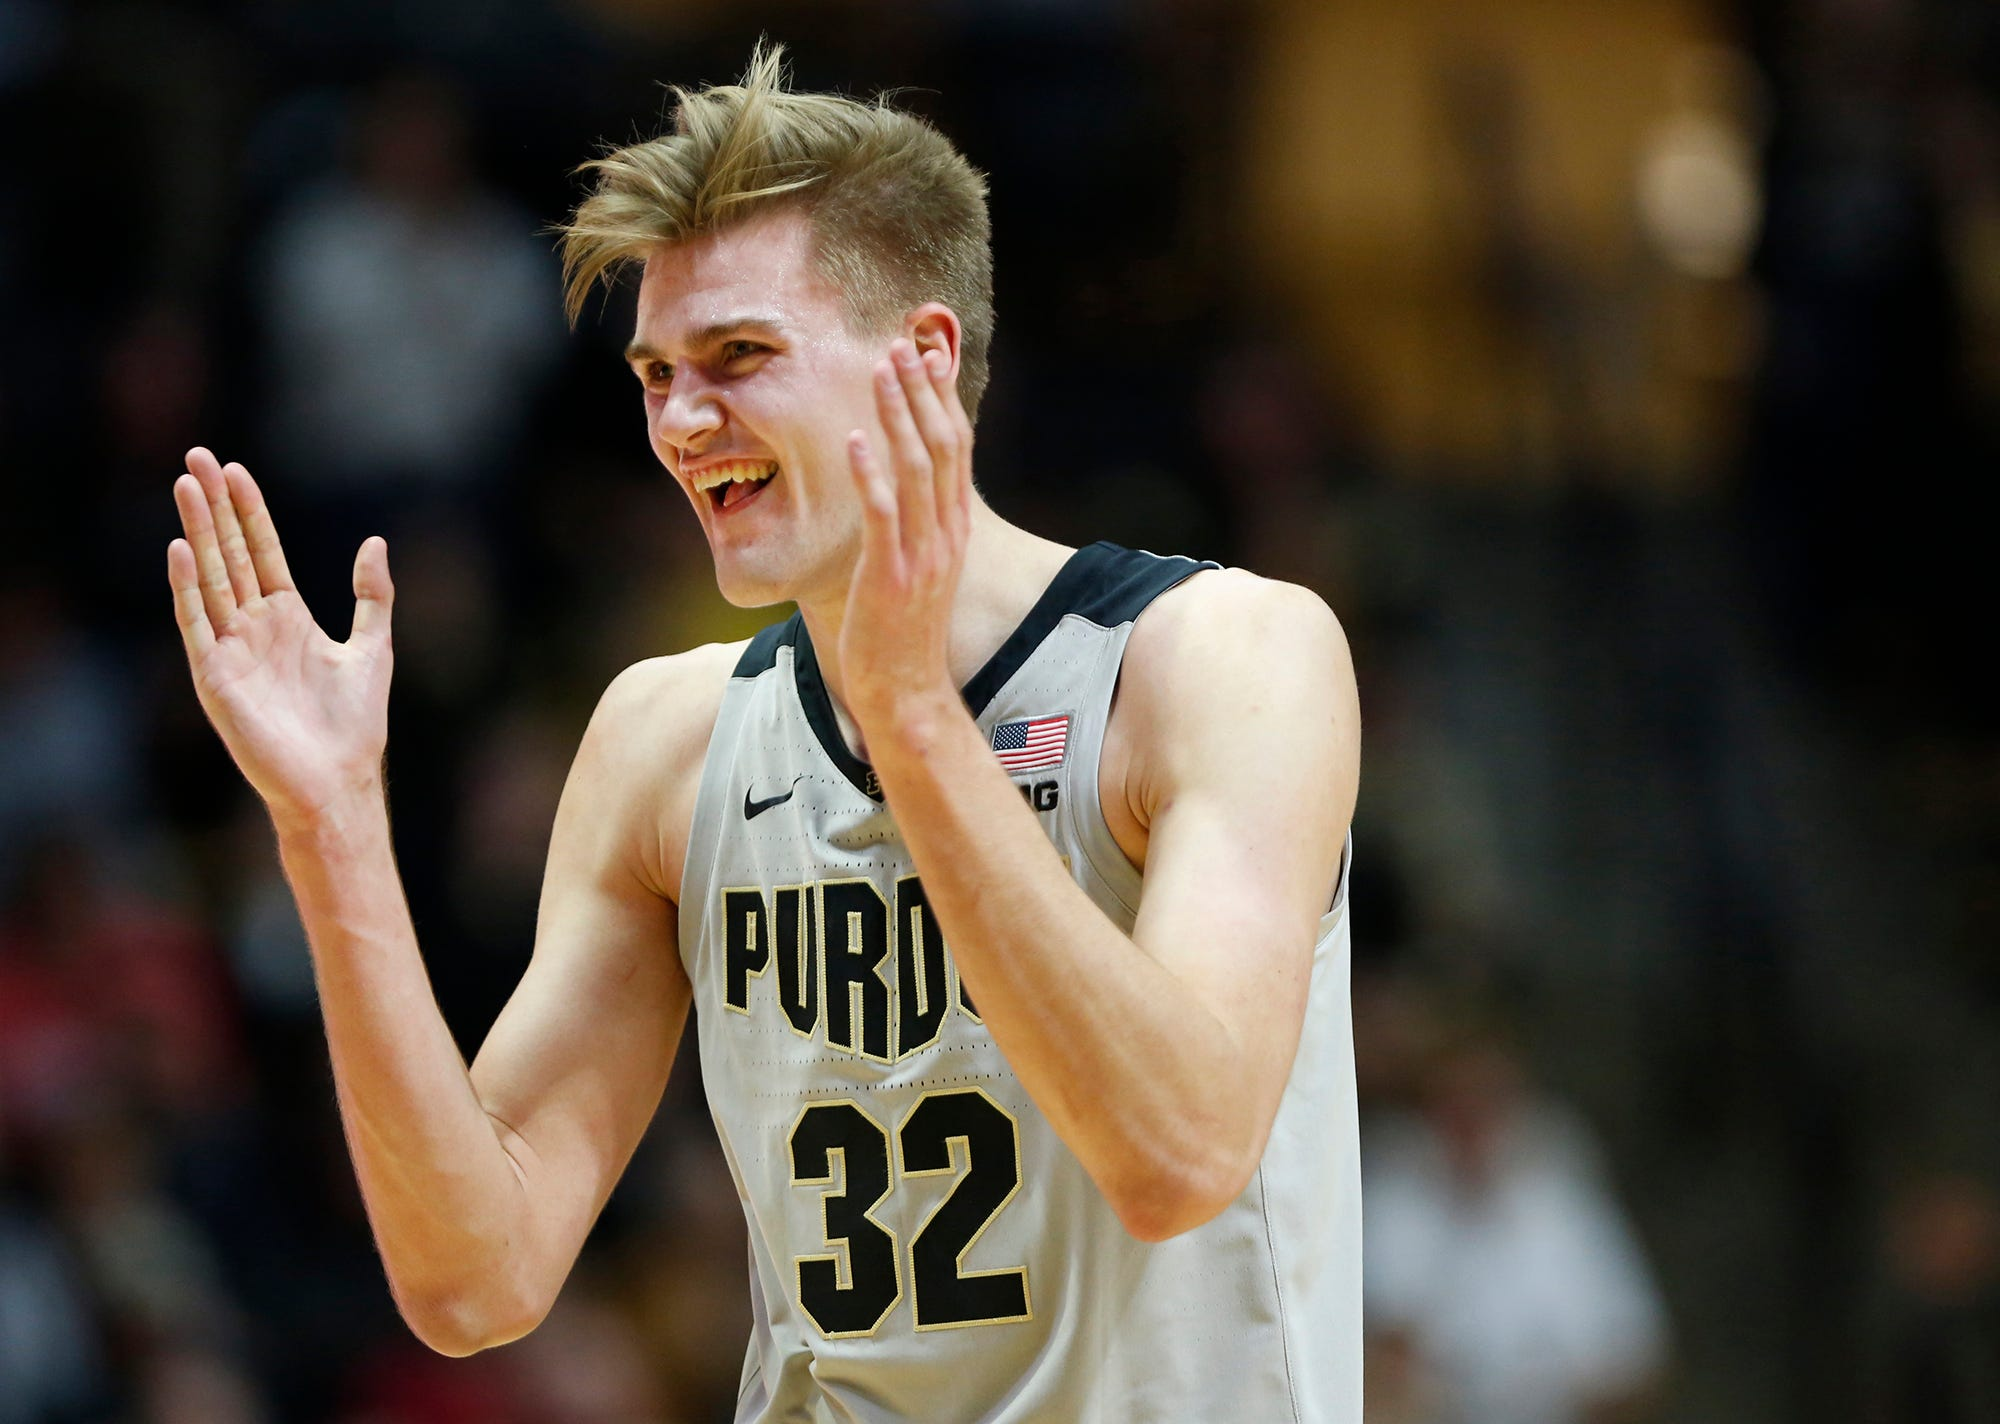 Matt Haarms of Purdue reacts as the Boilermakers go up 75-64 over Ball State with 6:58 remaining Saturday, November 10, 2018, at Mackey Arena. Purdue defeated Ball State 84-75.